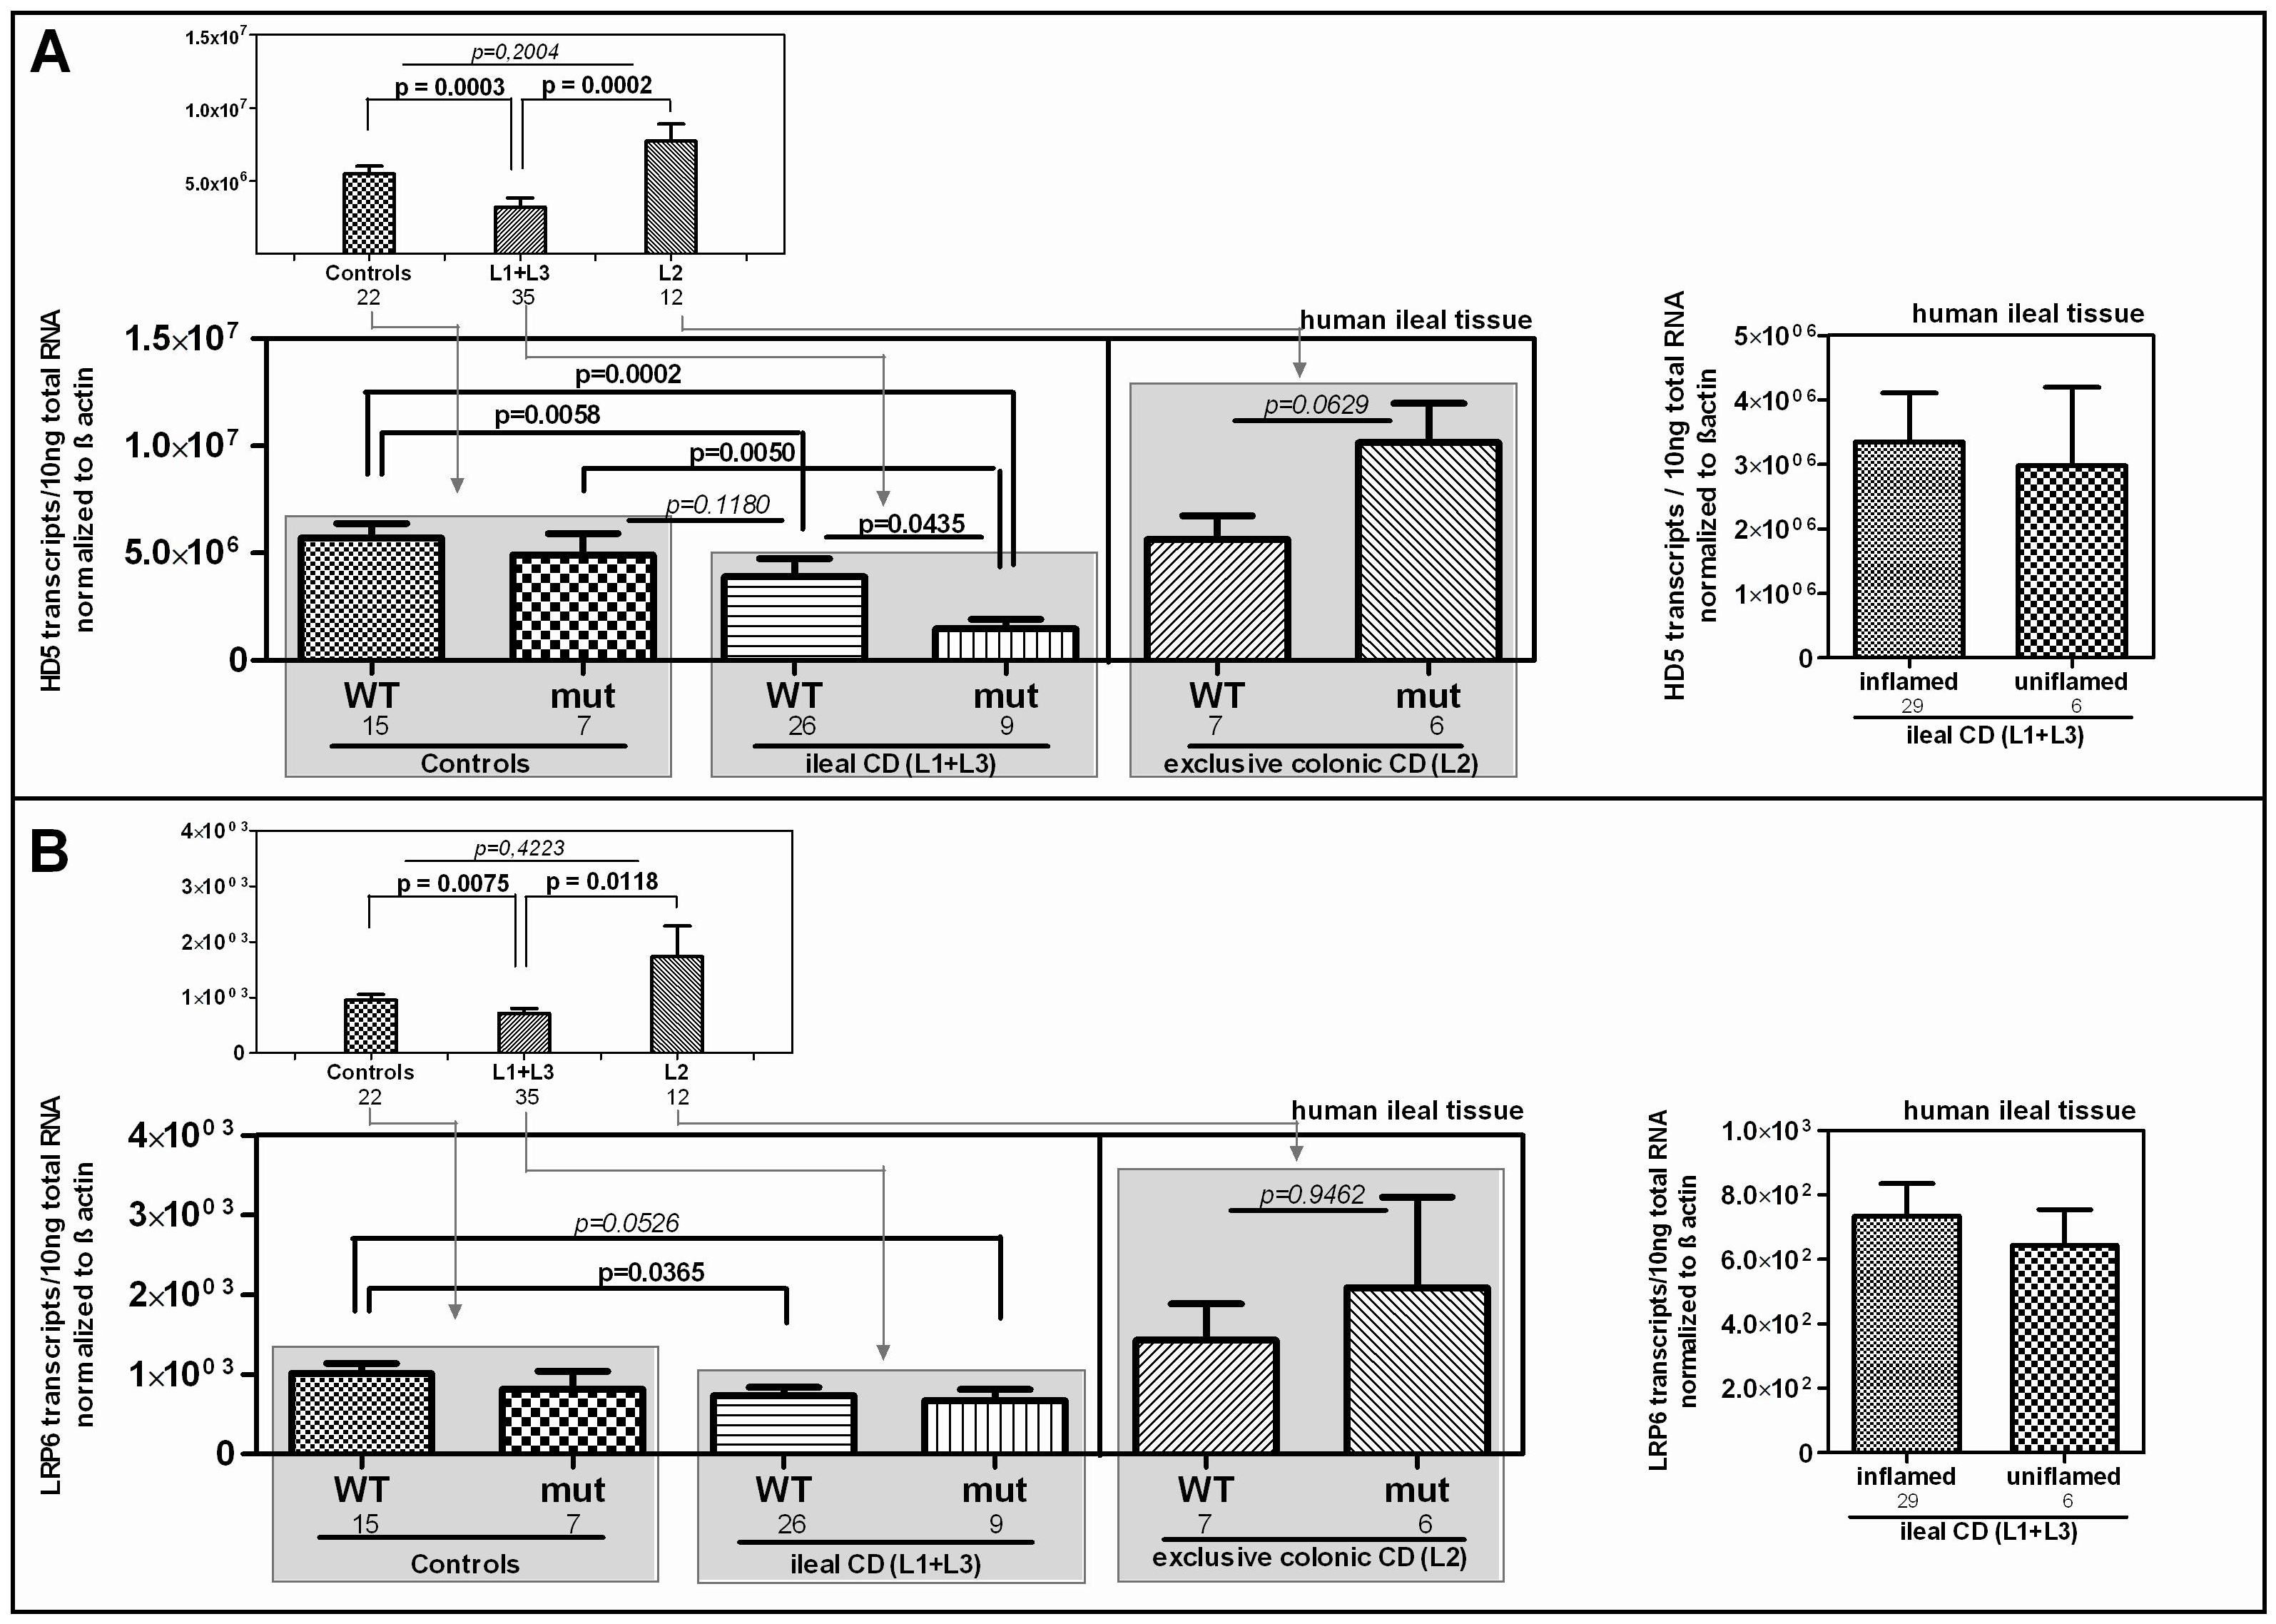 mRNA expression in ileal CD: Effect of the coding rare rs2302685 variant on the expression levels of HD-5 and LRP6.